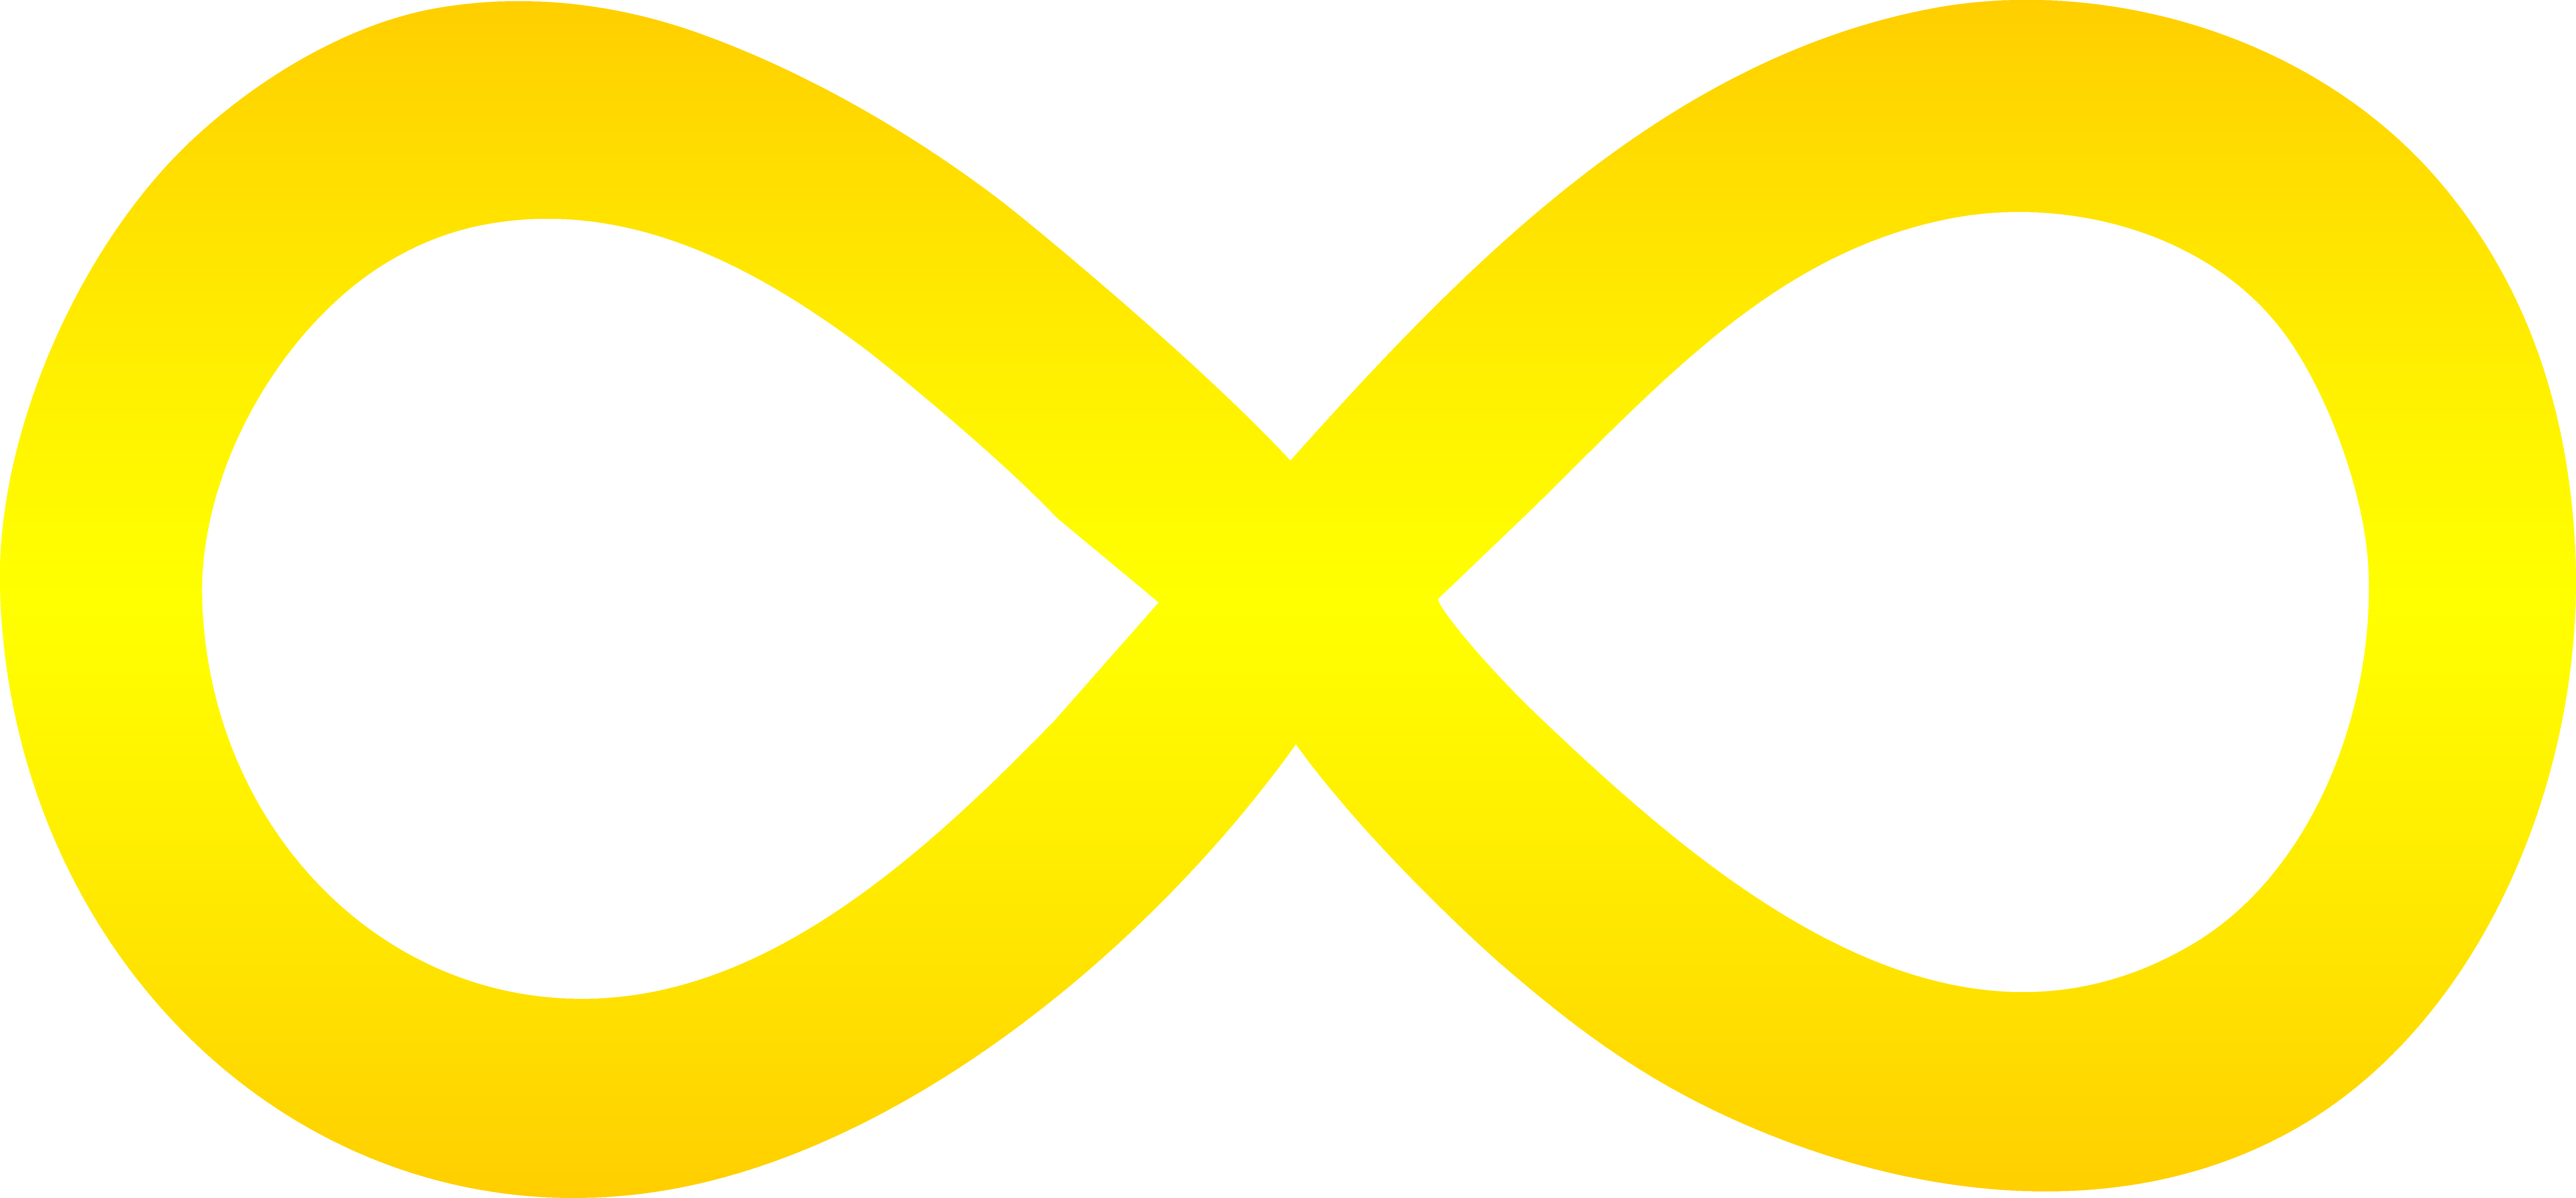 Infinity clipart infinity sign Free Infinity Infinity Golden Symbol